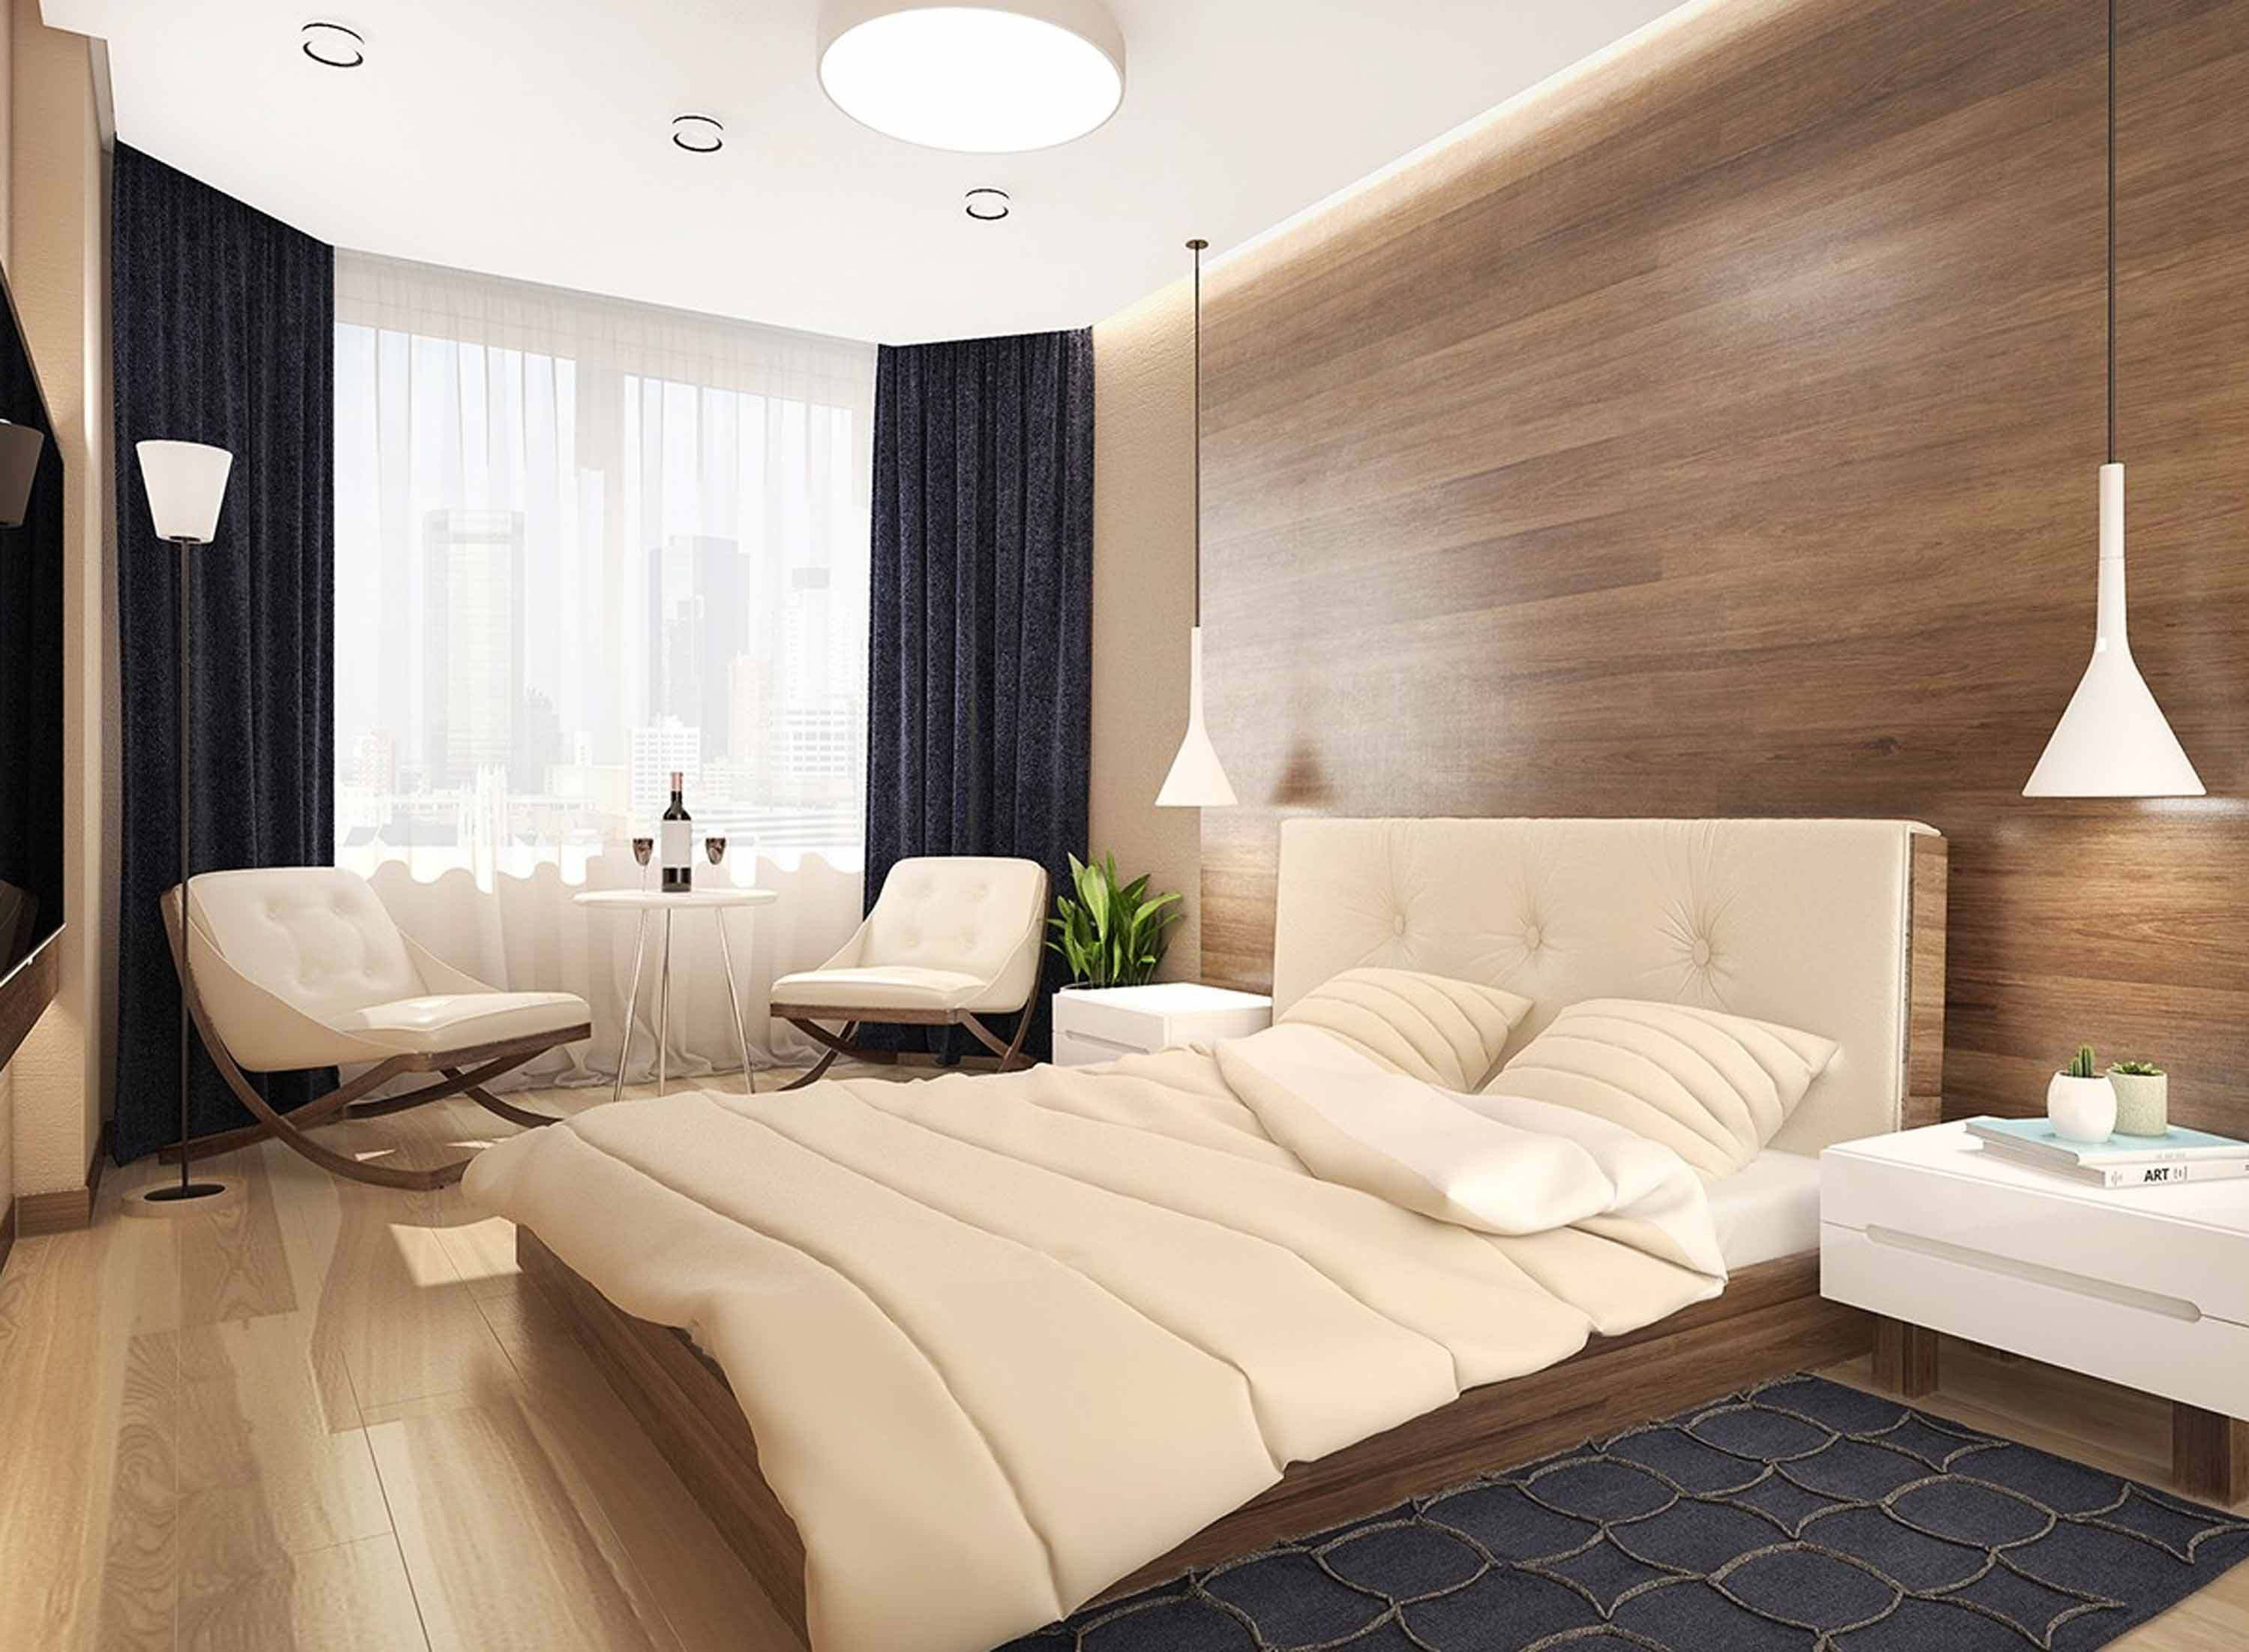 modern bedroom designs%0A   How Soundproof Bedroom Creative Ideas For Peaceful Sleep Soundproofing  Walls Cheap    Best Free Home Design Idea  u     Inspiration